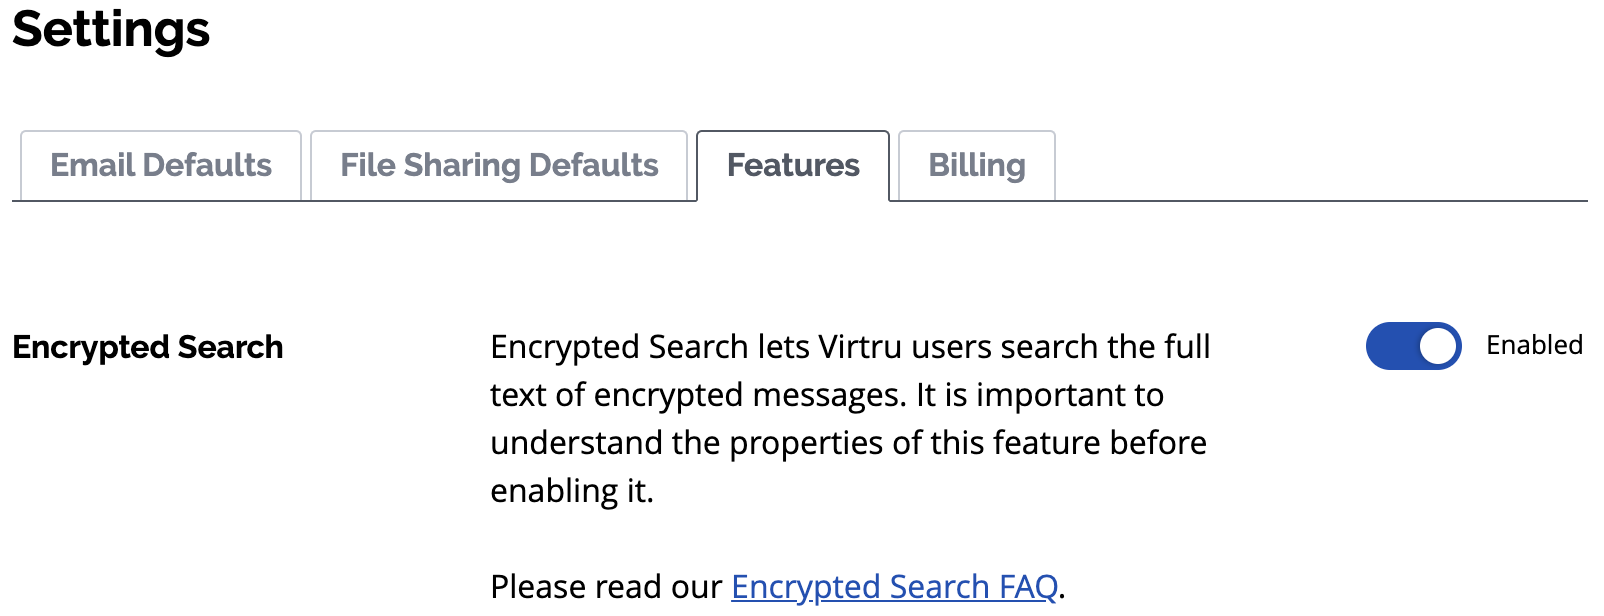 Enabled Encrypted Search